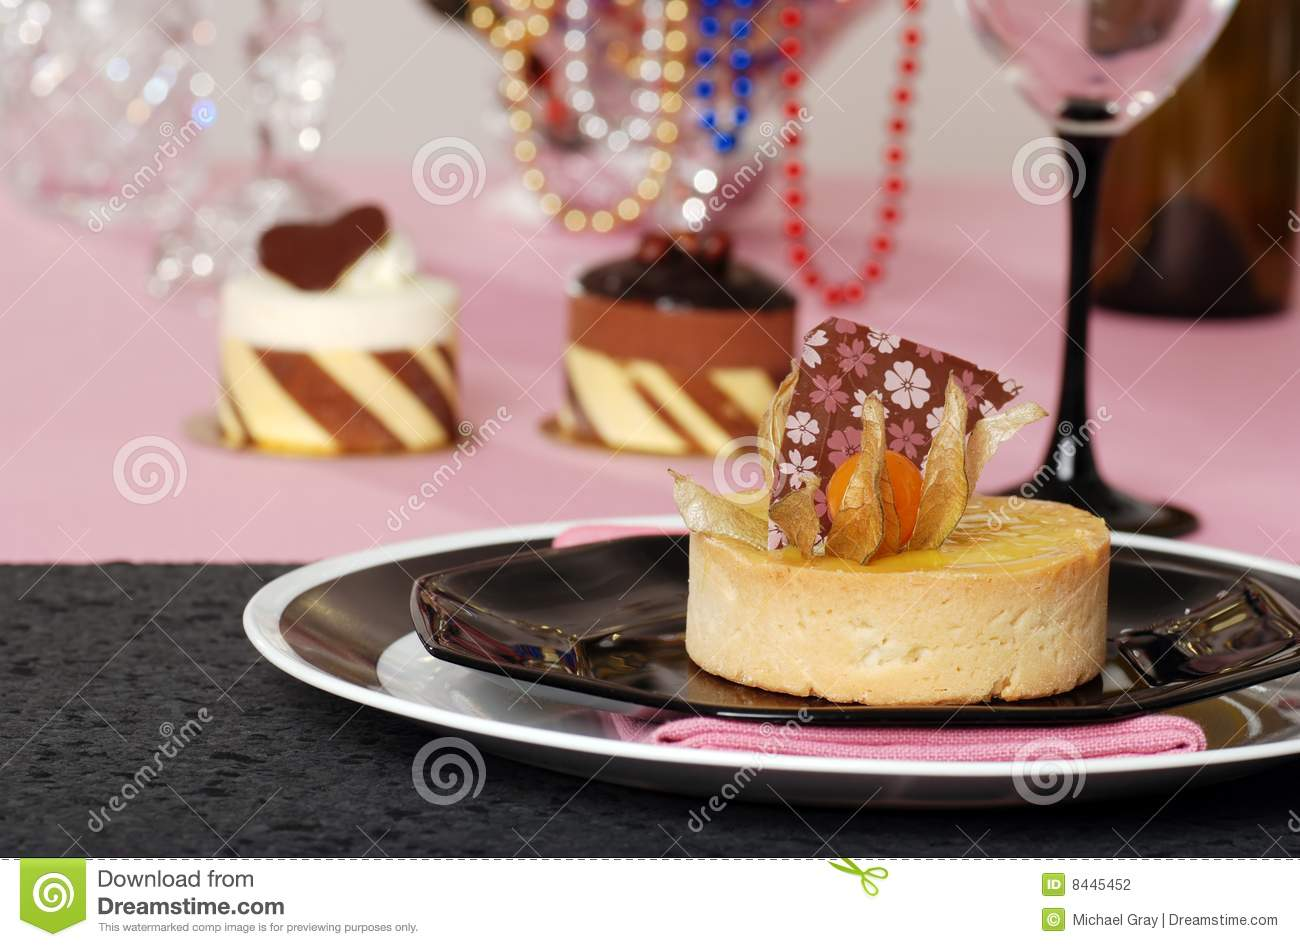 Lemon tart with desserts in the background